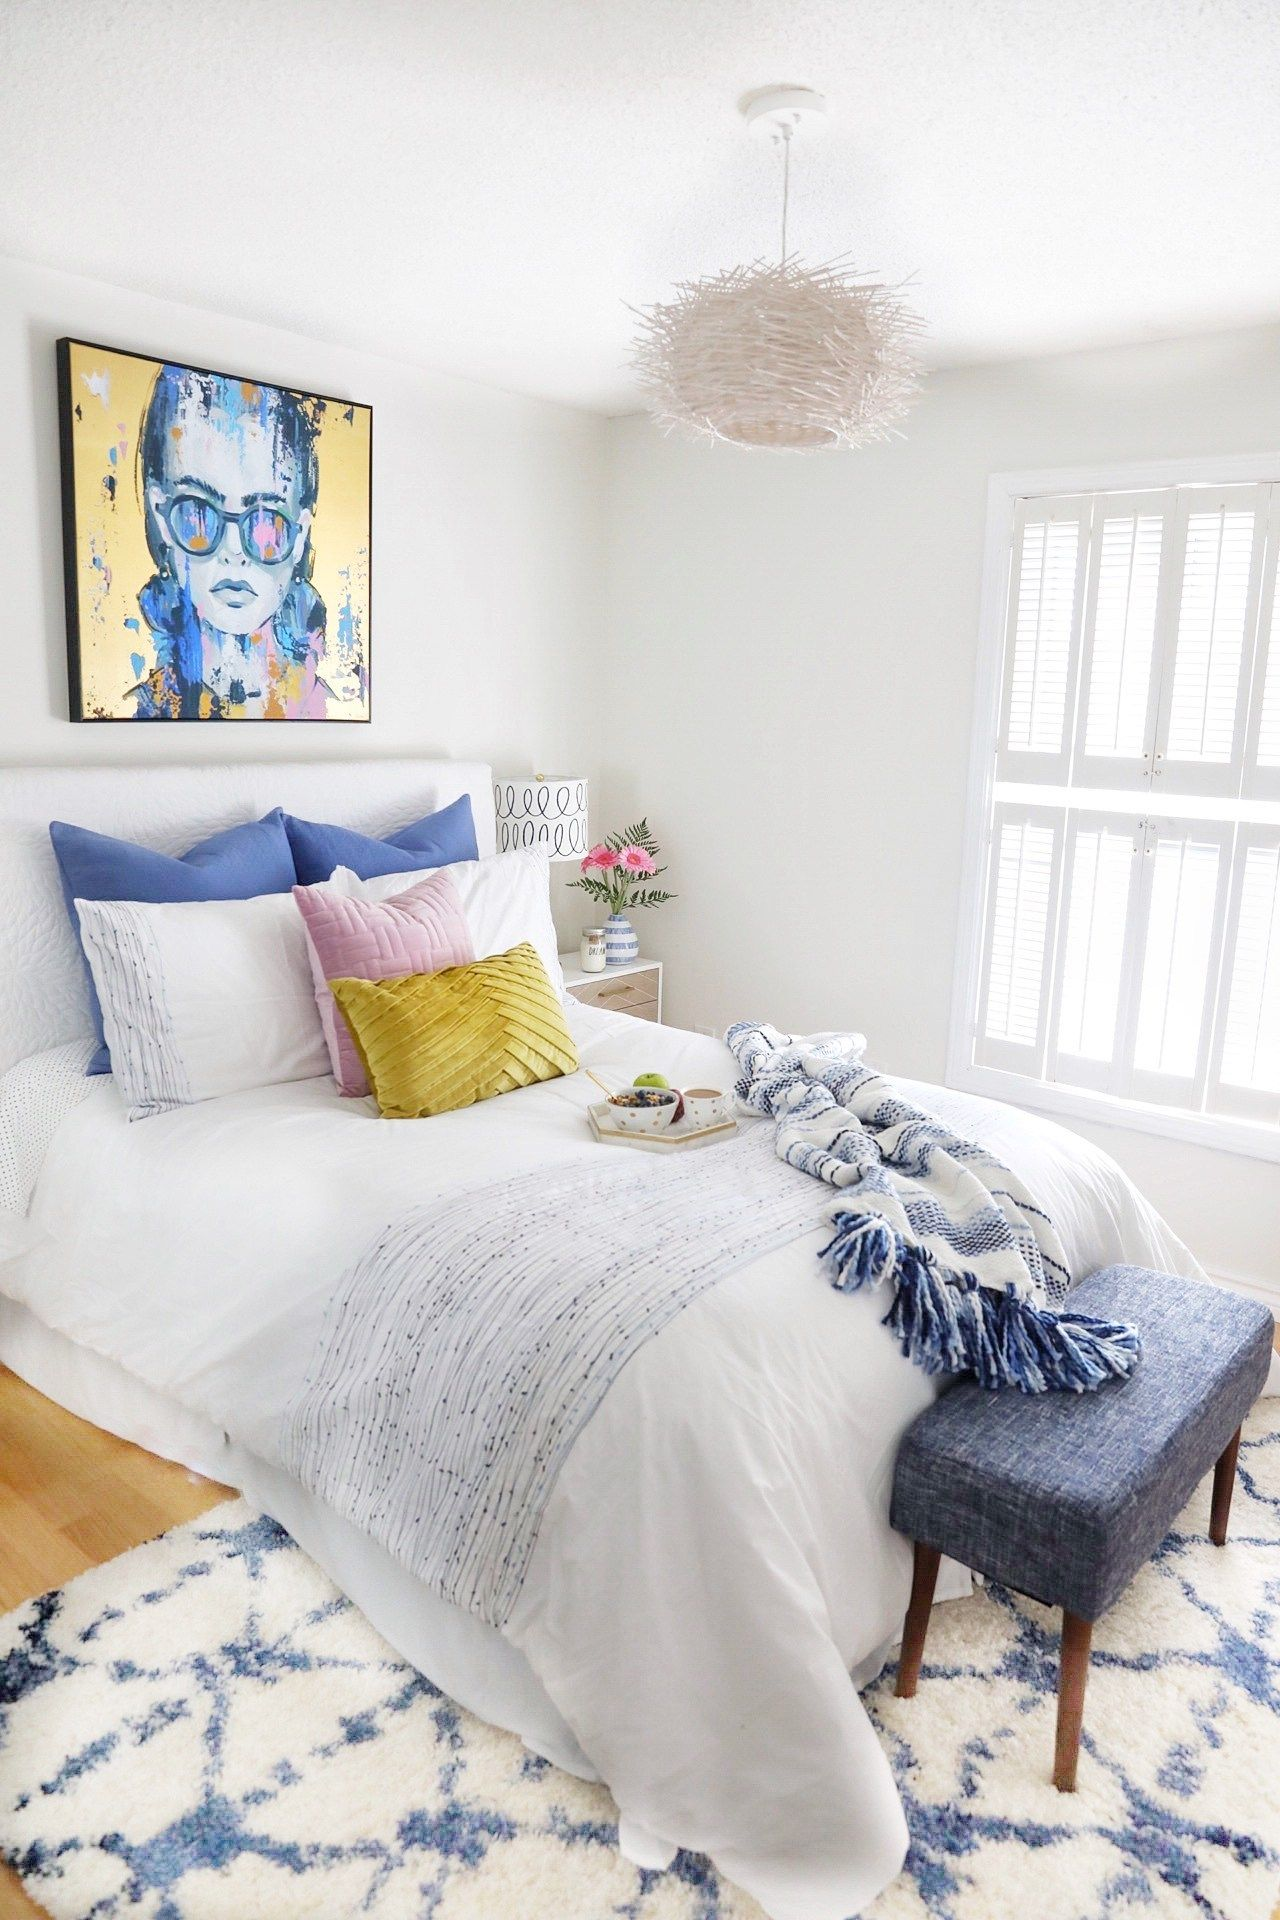 These 8 Unique Guest Bedroom Decorating Ideas All but ...